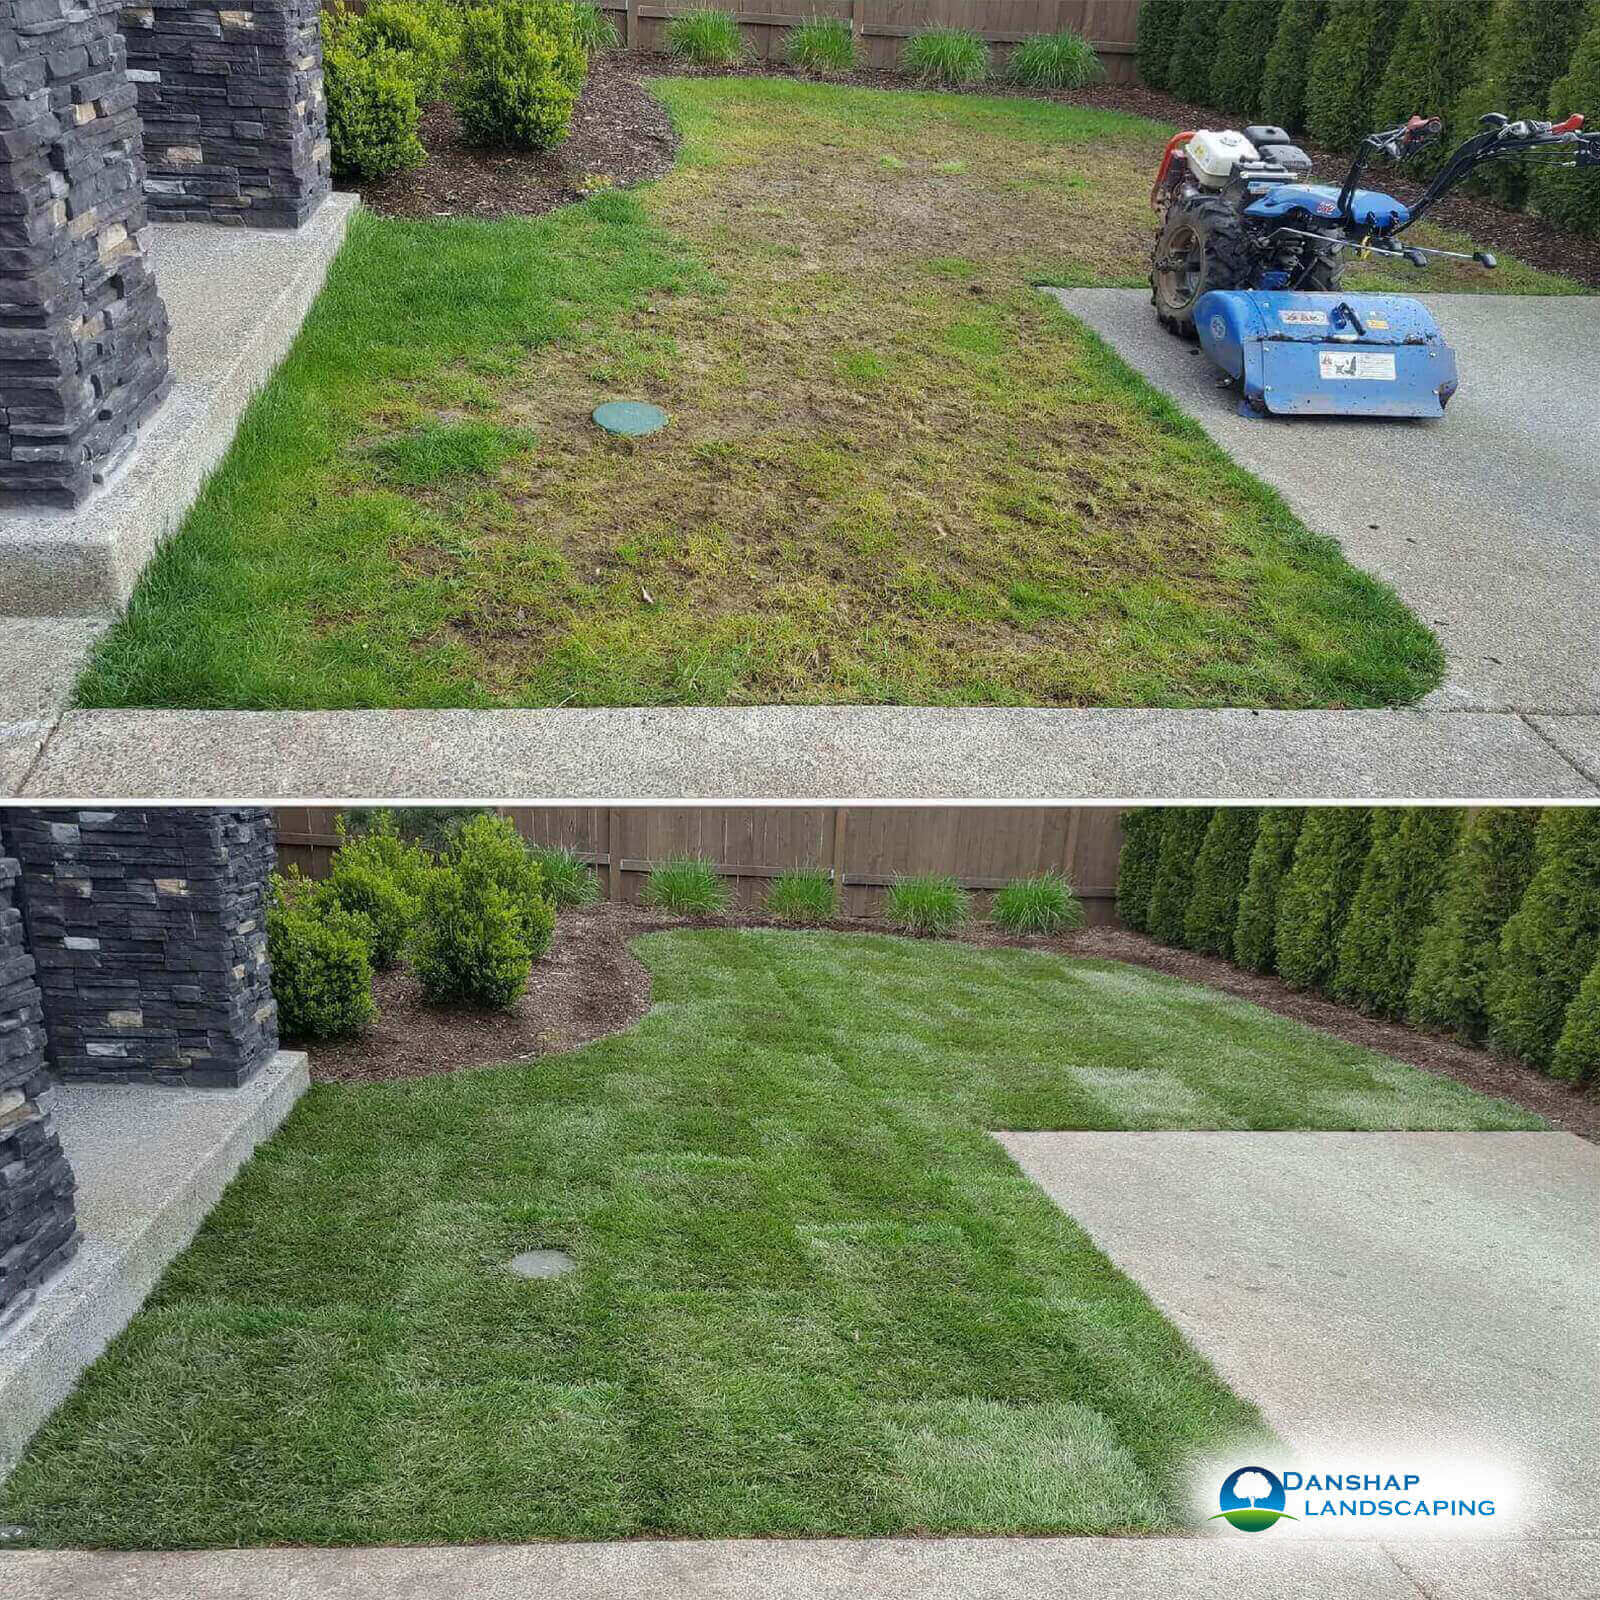 Sod-Replacement-Danshaplandscape-3